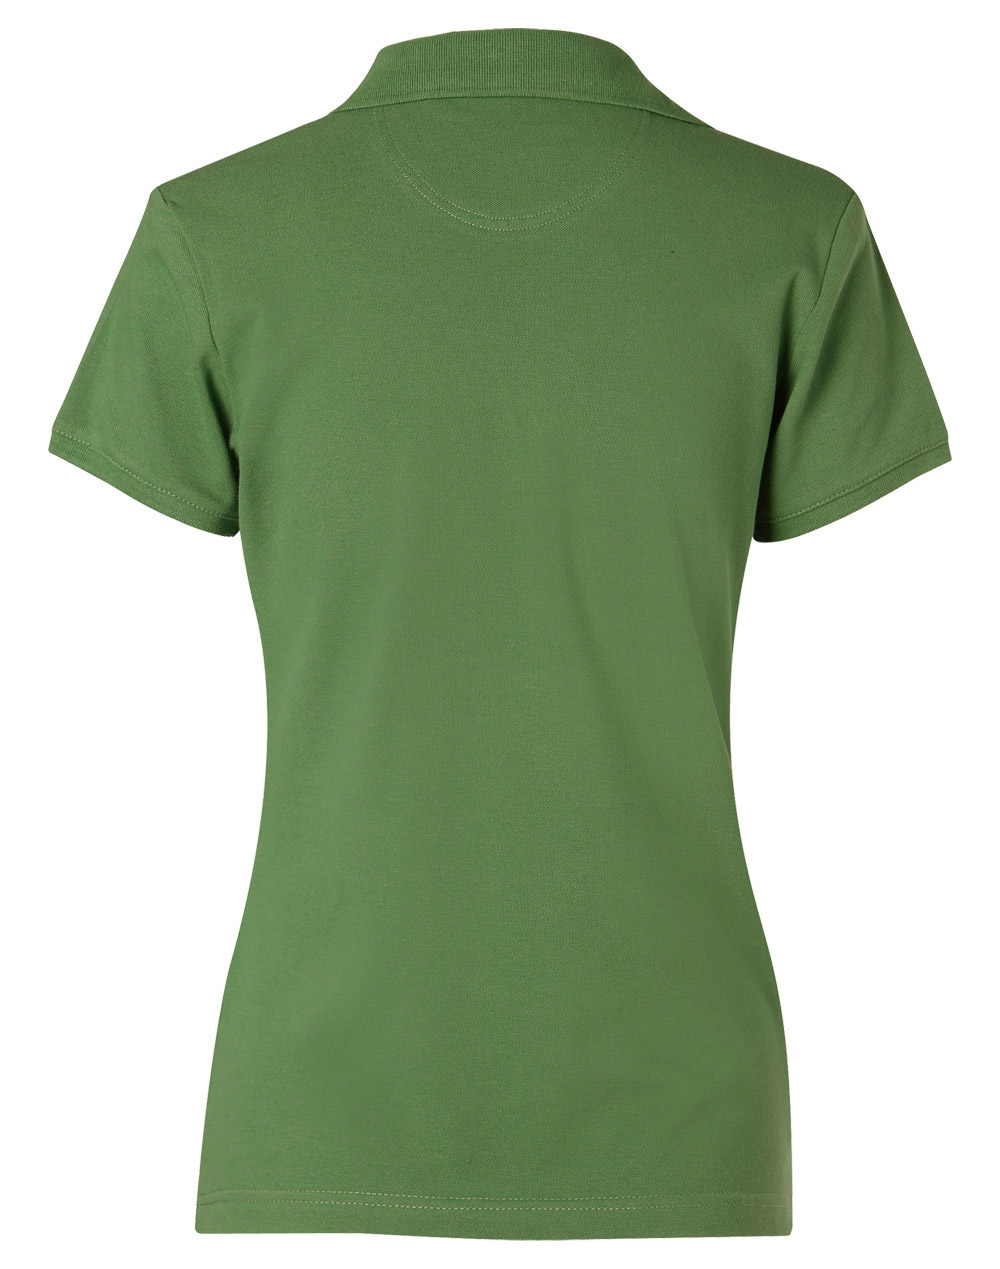 https://s3-ap-southeast-1.amazonaws.com/ws-imgs/POLOSHIRTS/PS40_Green_Back.jpg